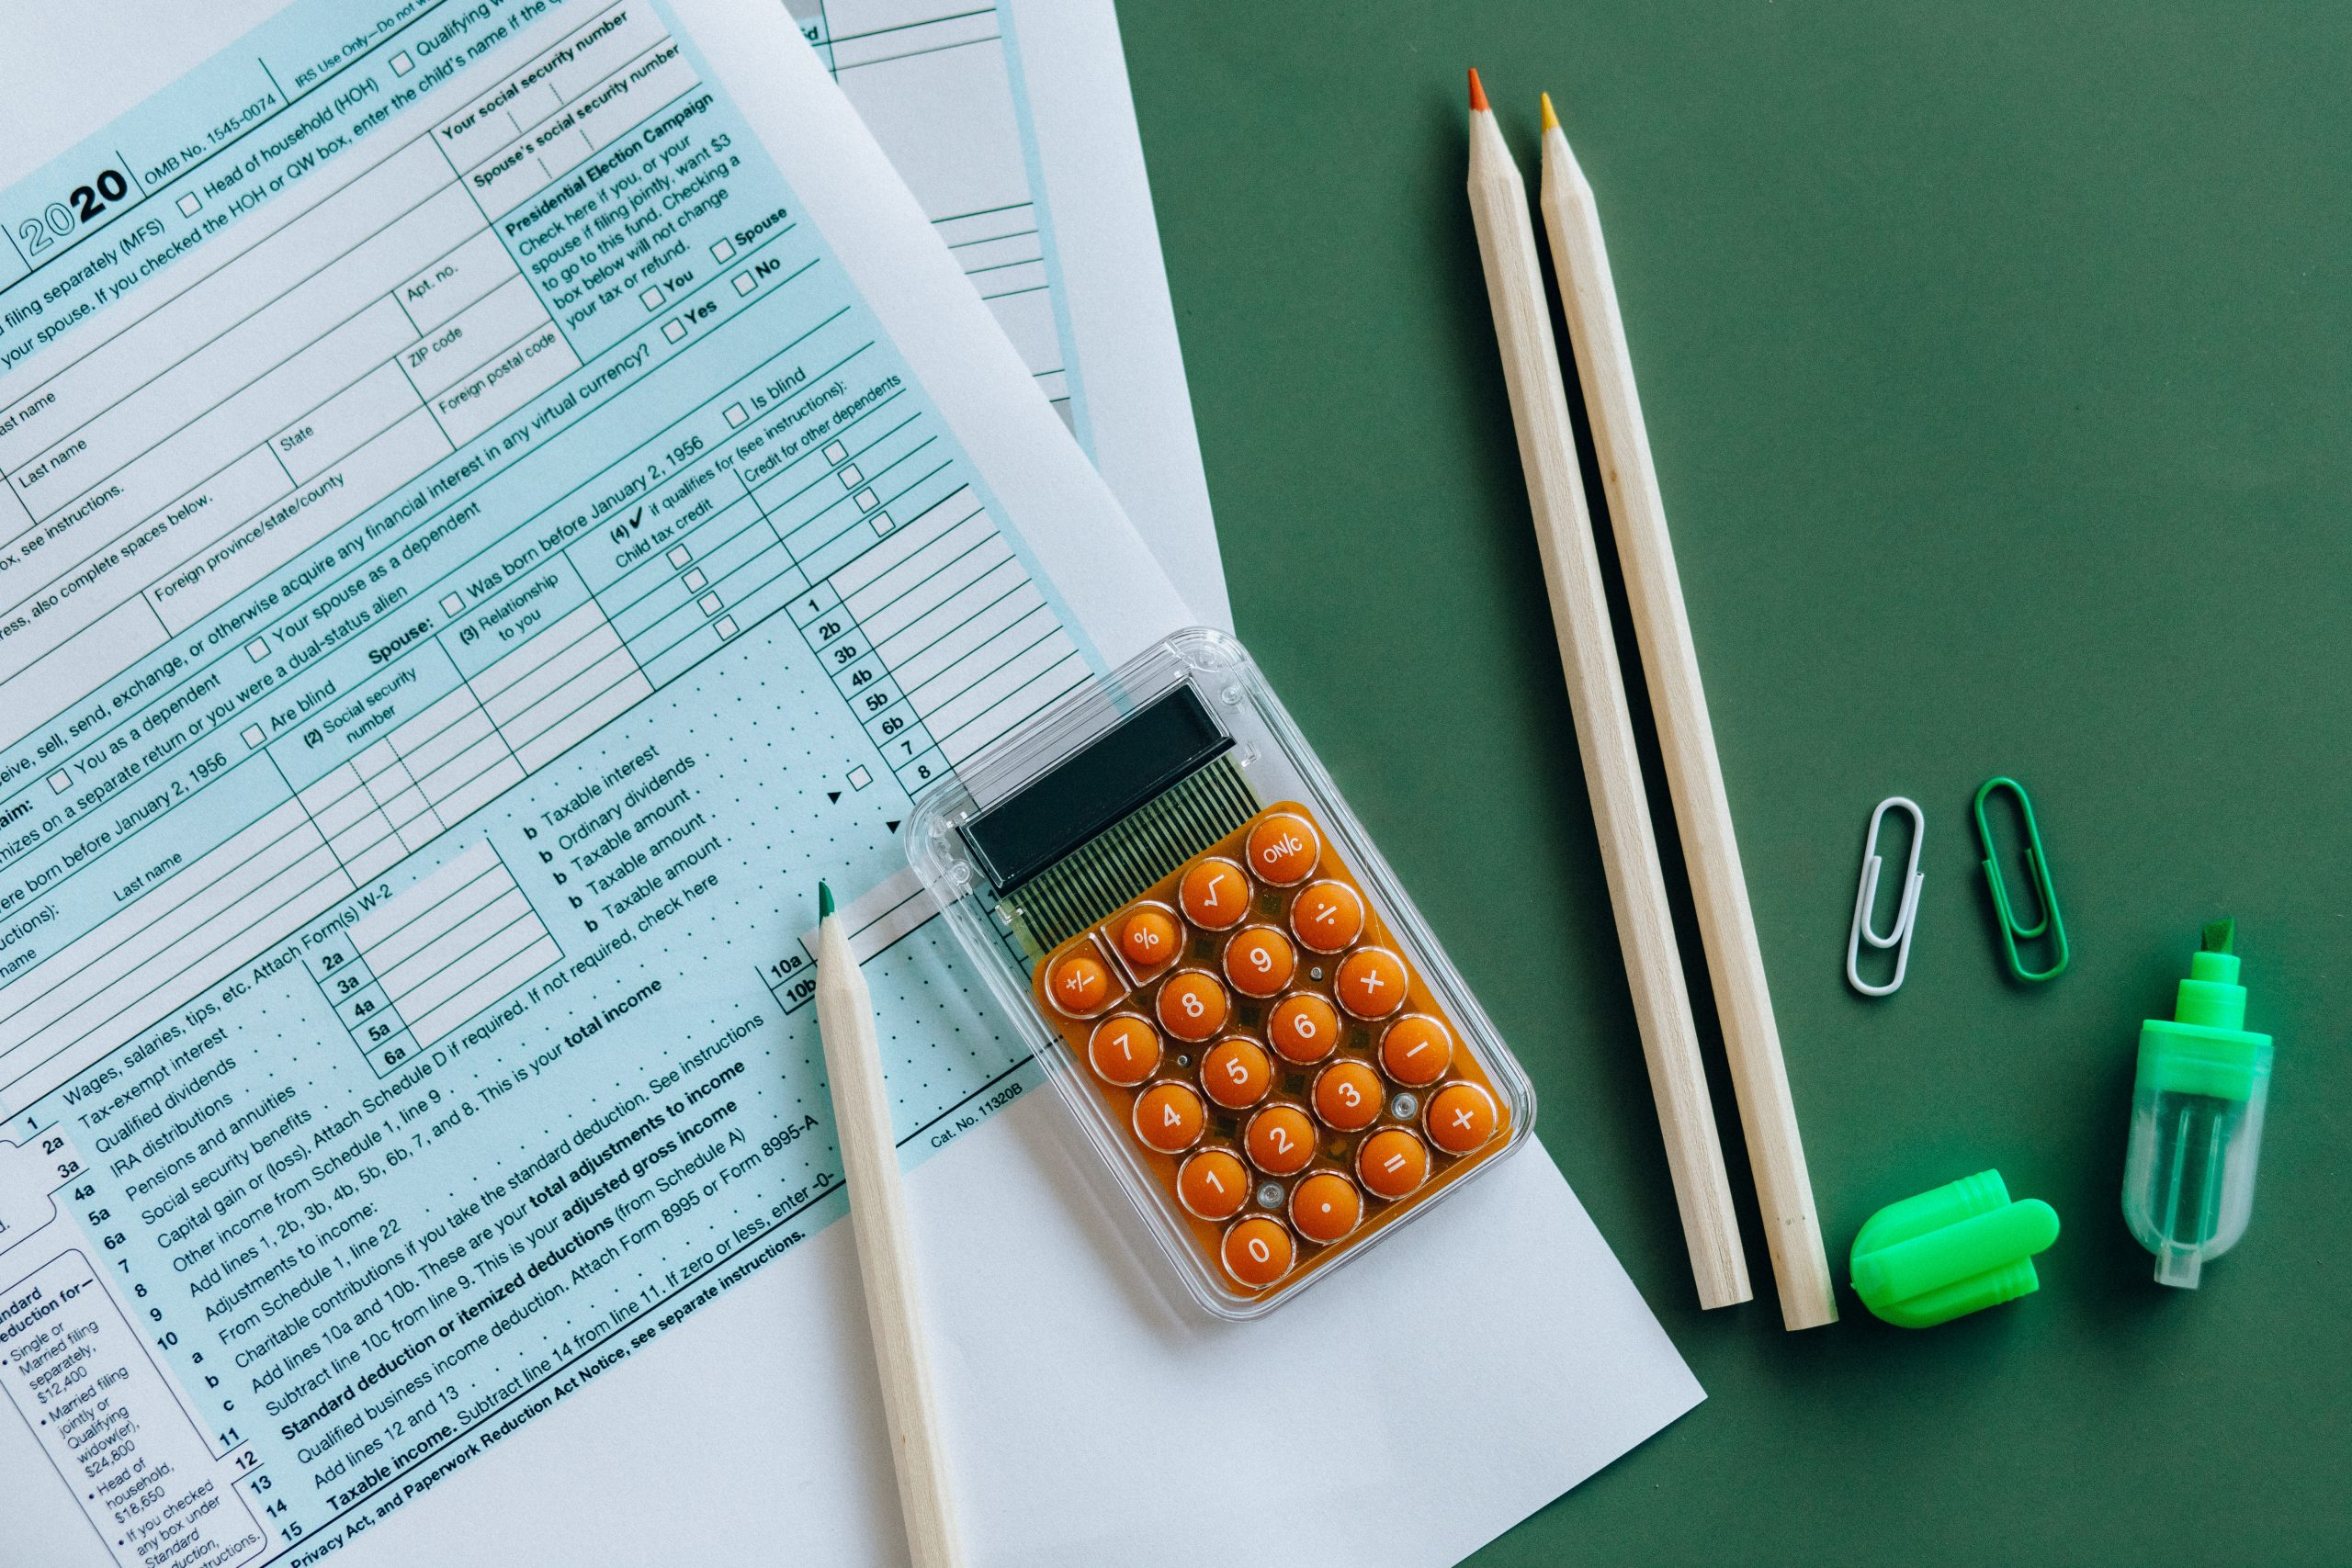 Accountant Brisbane - paper, calculator and stationery on surface